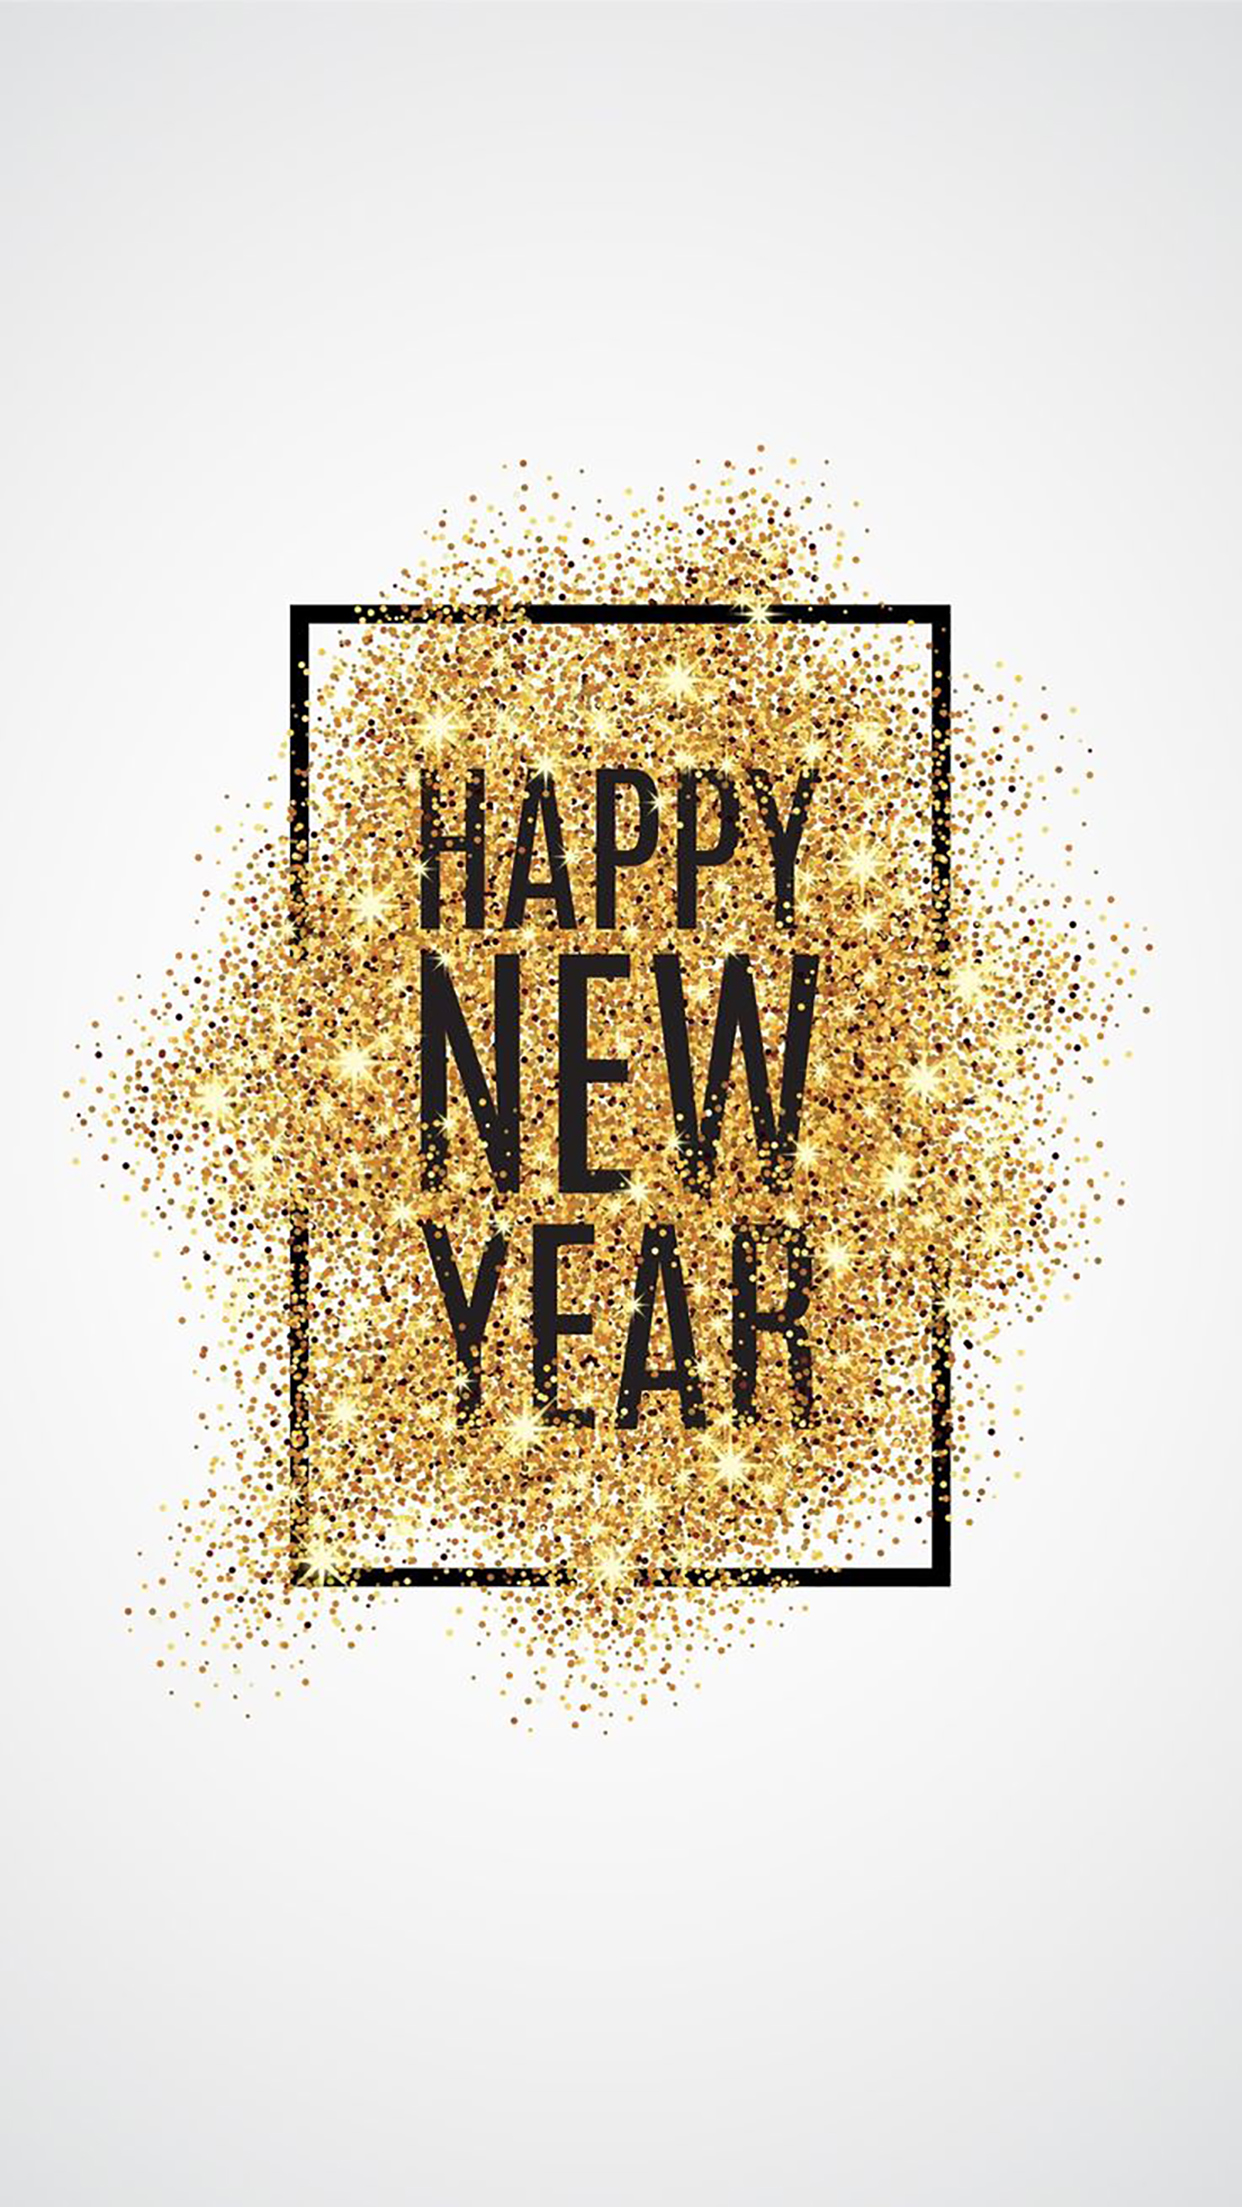 Happy New Year 2 3Wallpapers iPhone Parallax Les 3Wallpapers iPhone du jour (01/01/2017)